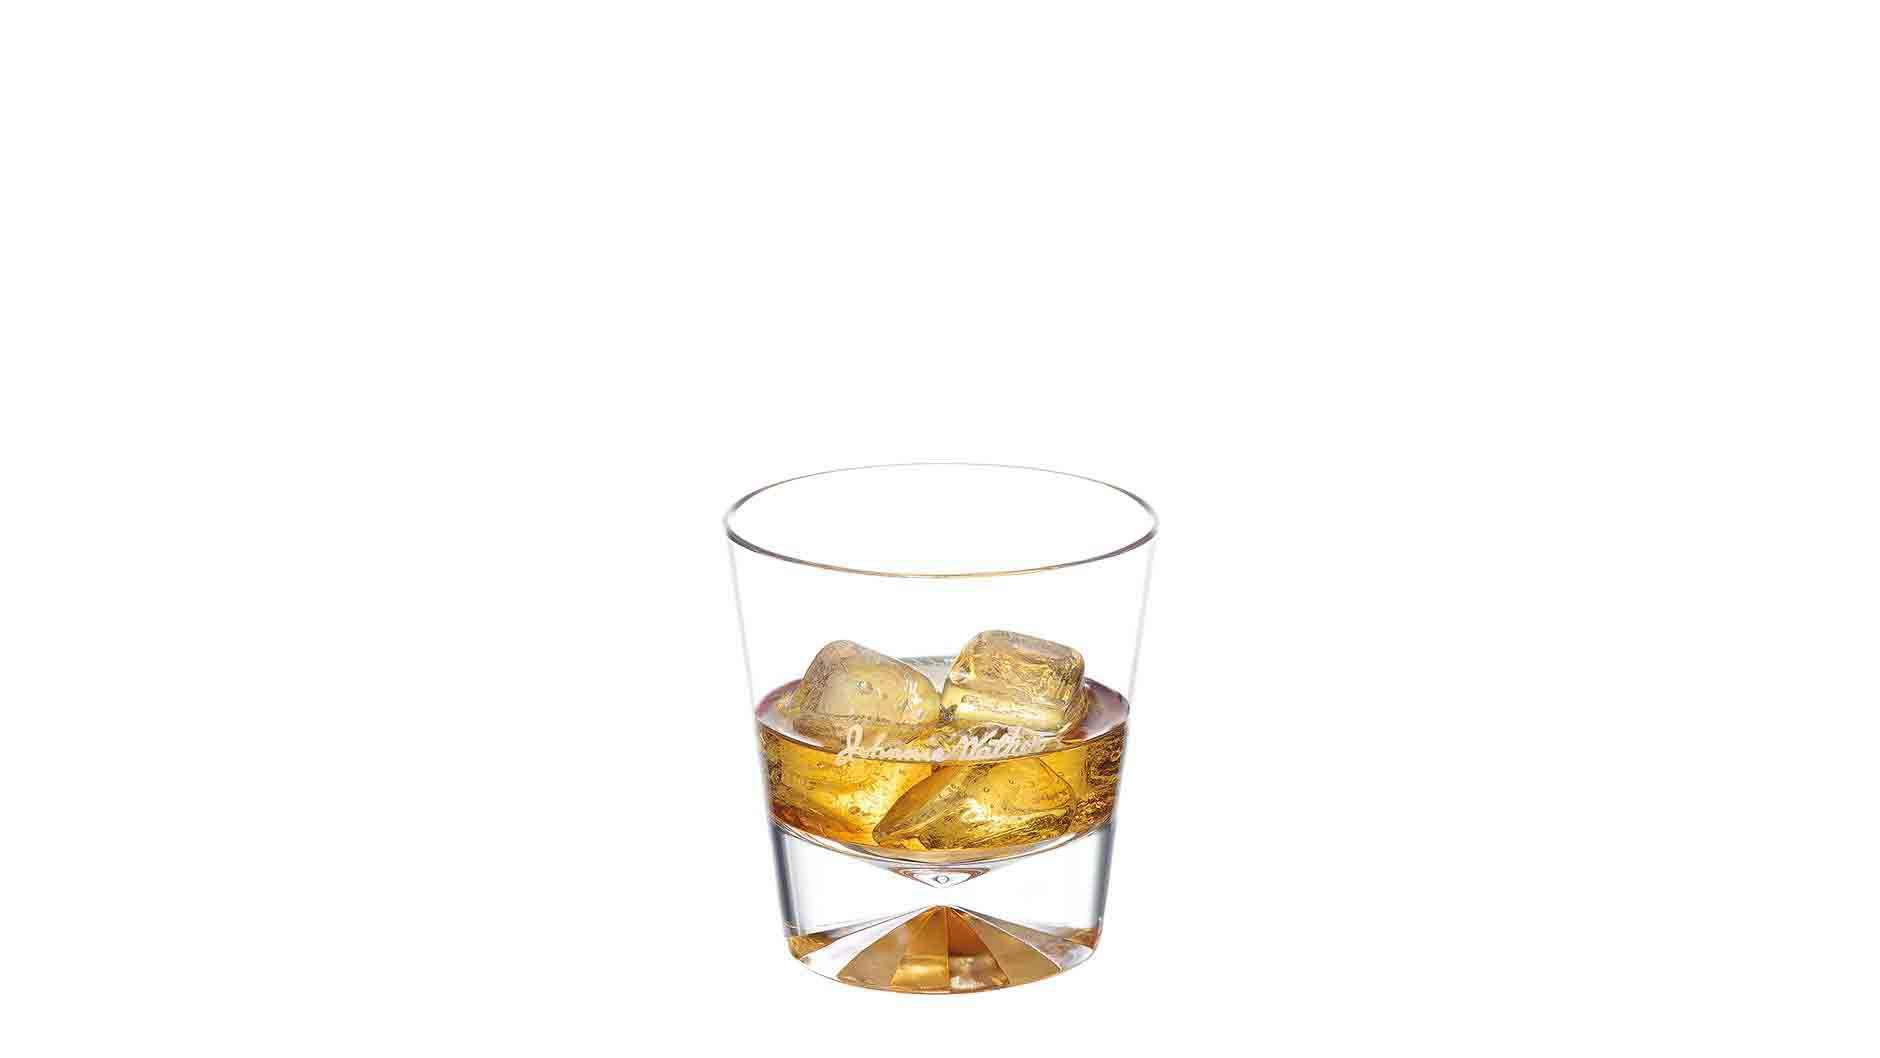 Johnnie Walker Double Black on the Rocks in a tumbler